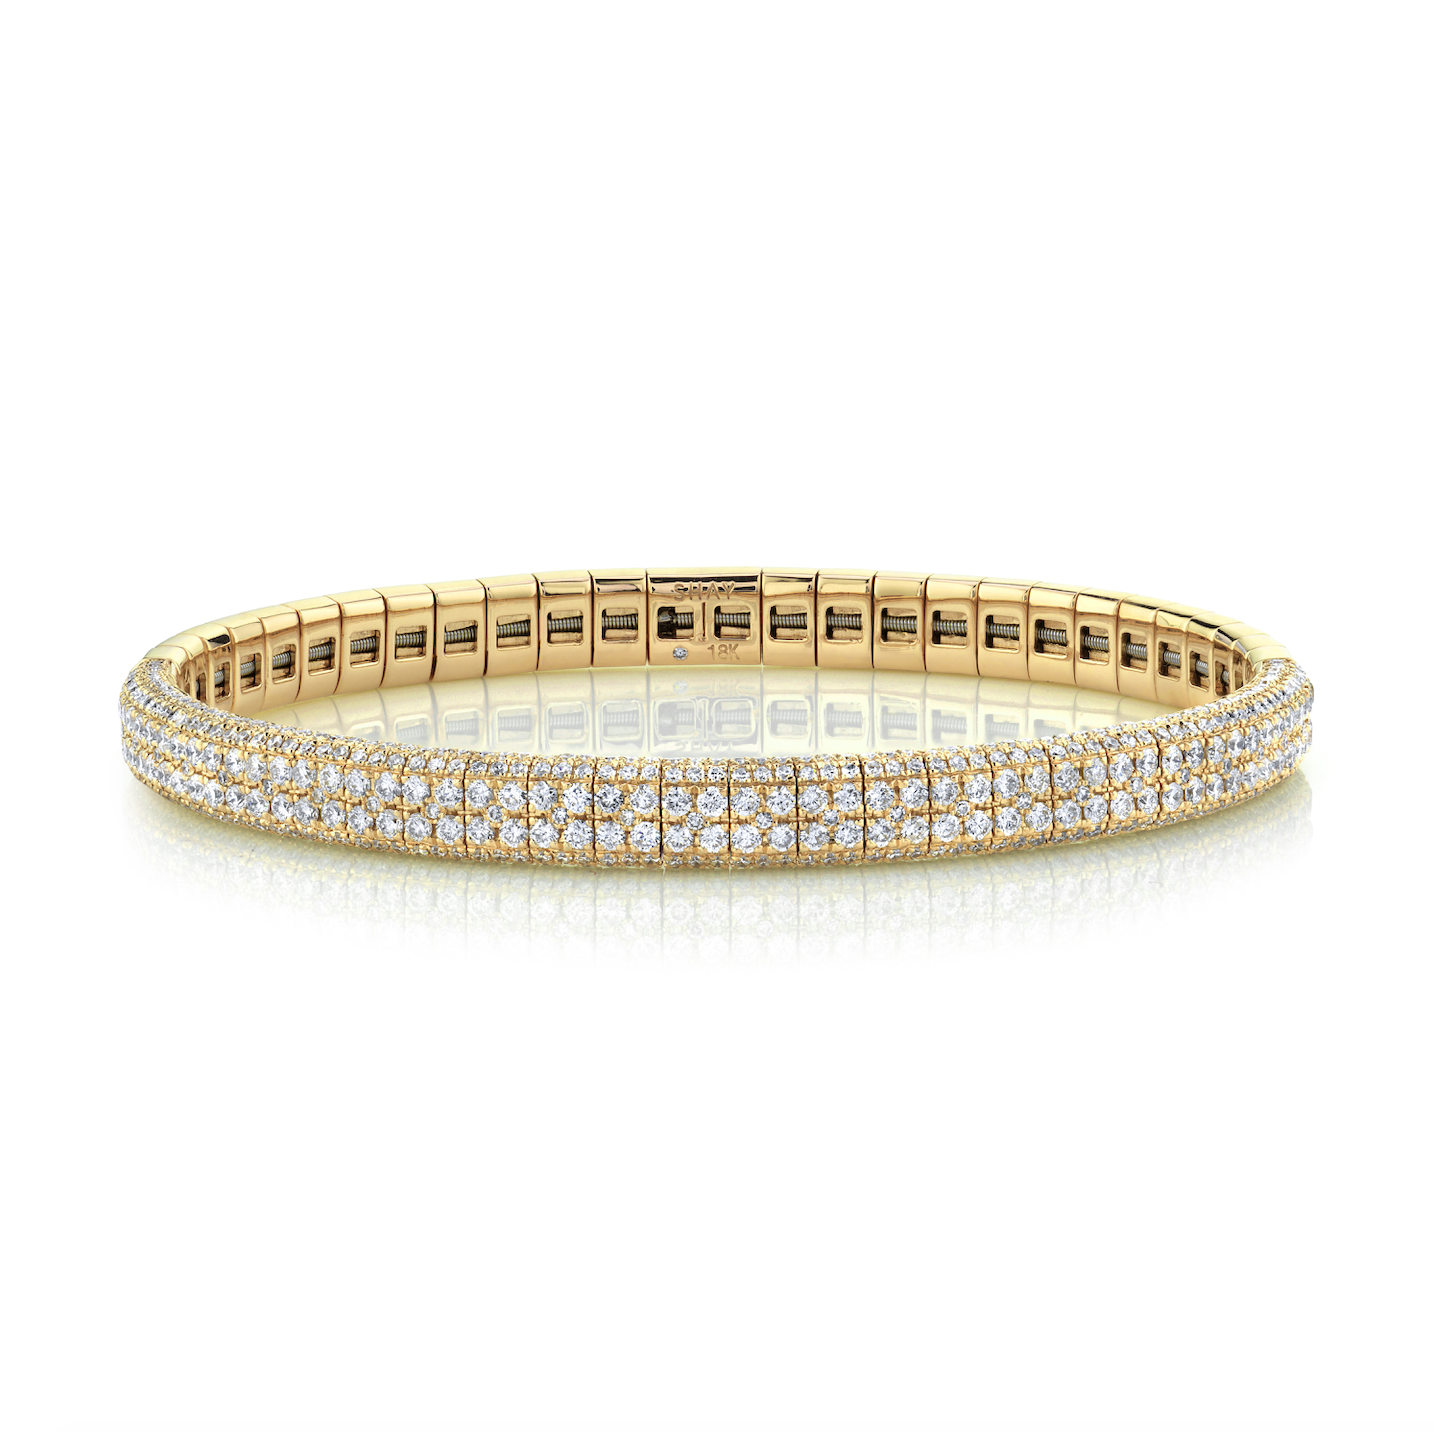 DIAMOND DOUBLE ROW PAVE STRETCH BRACELET